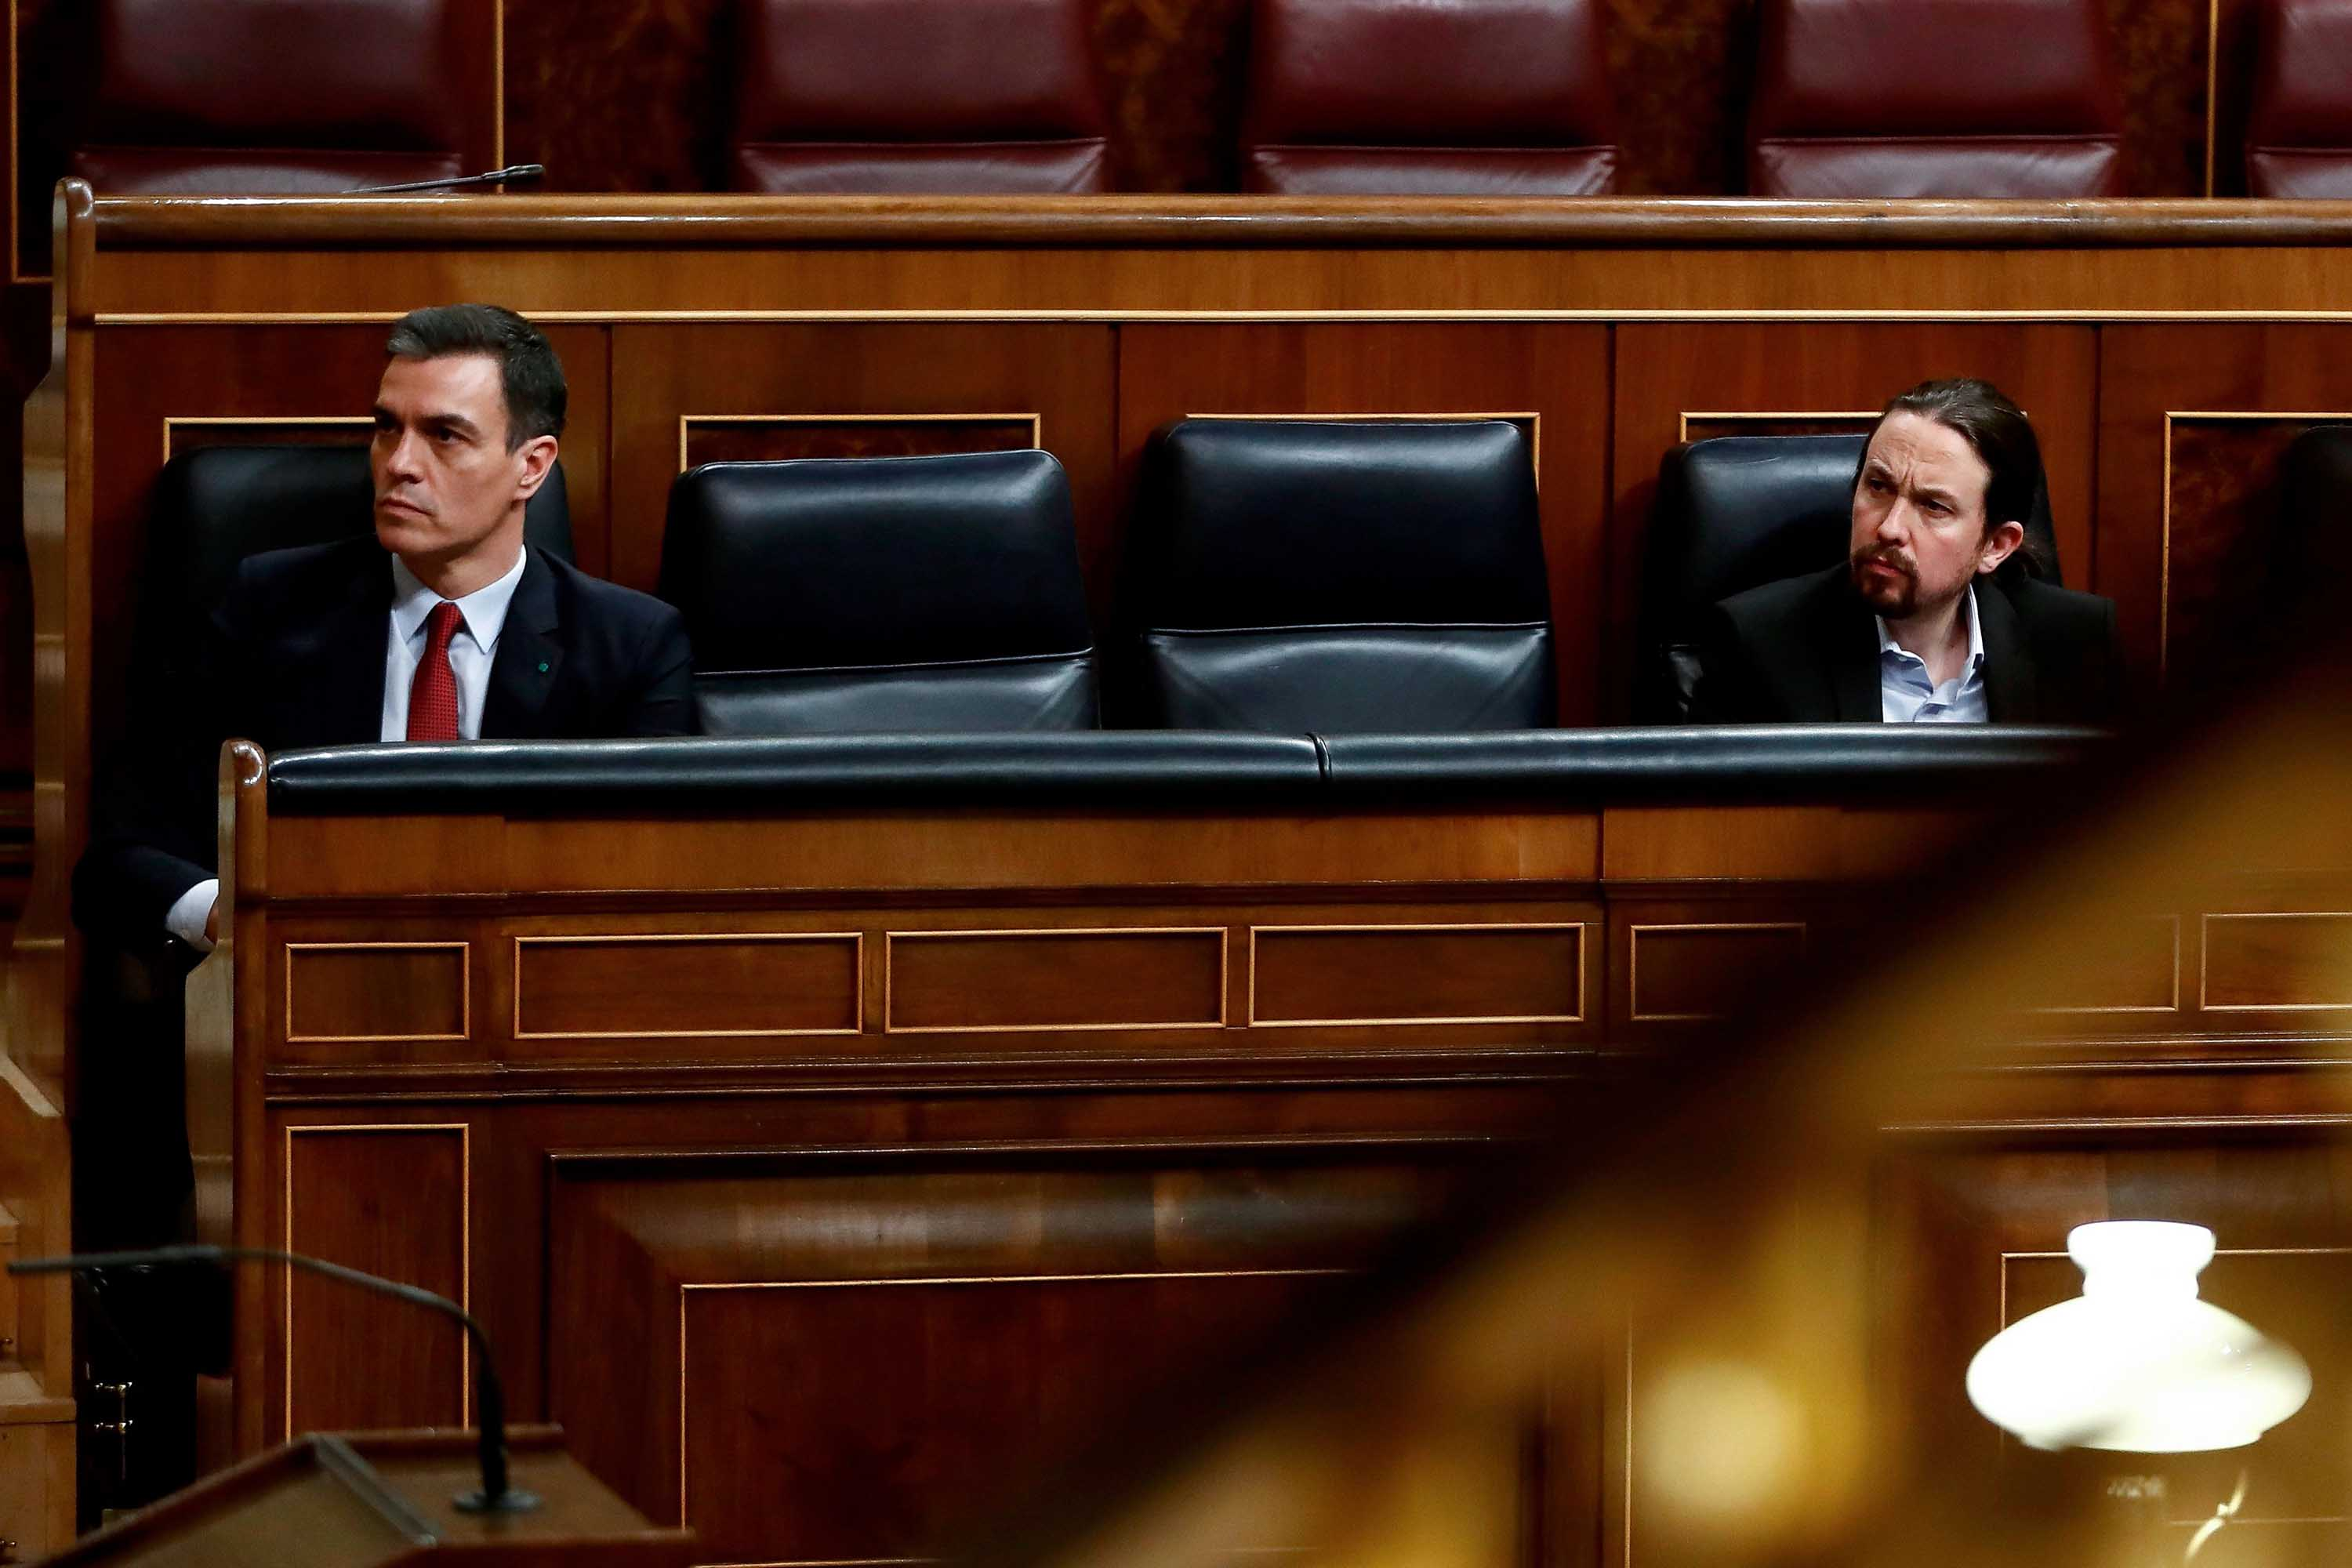 Second deputy Spanish Prime Minister Pablo Iglesias, right, attends a legislative session alongside Spanish Prime Minister Pedro Sanchez in Madrid, Spain, on March 25.